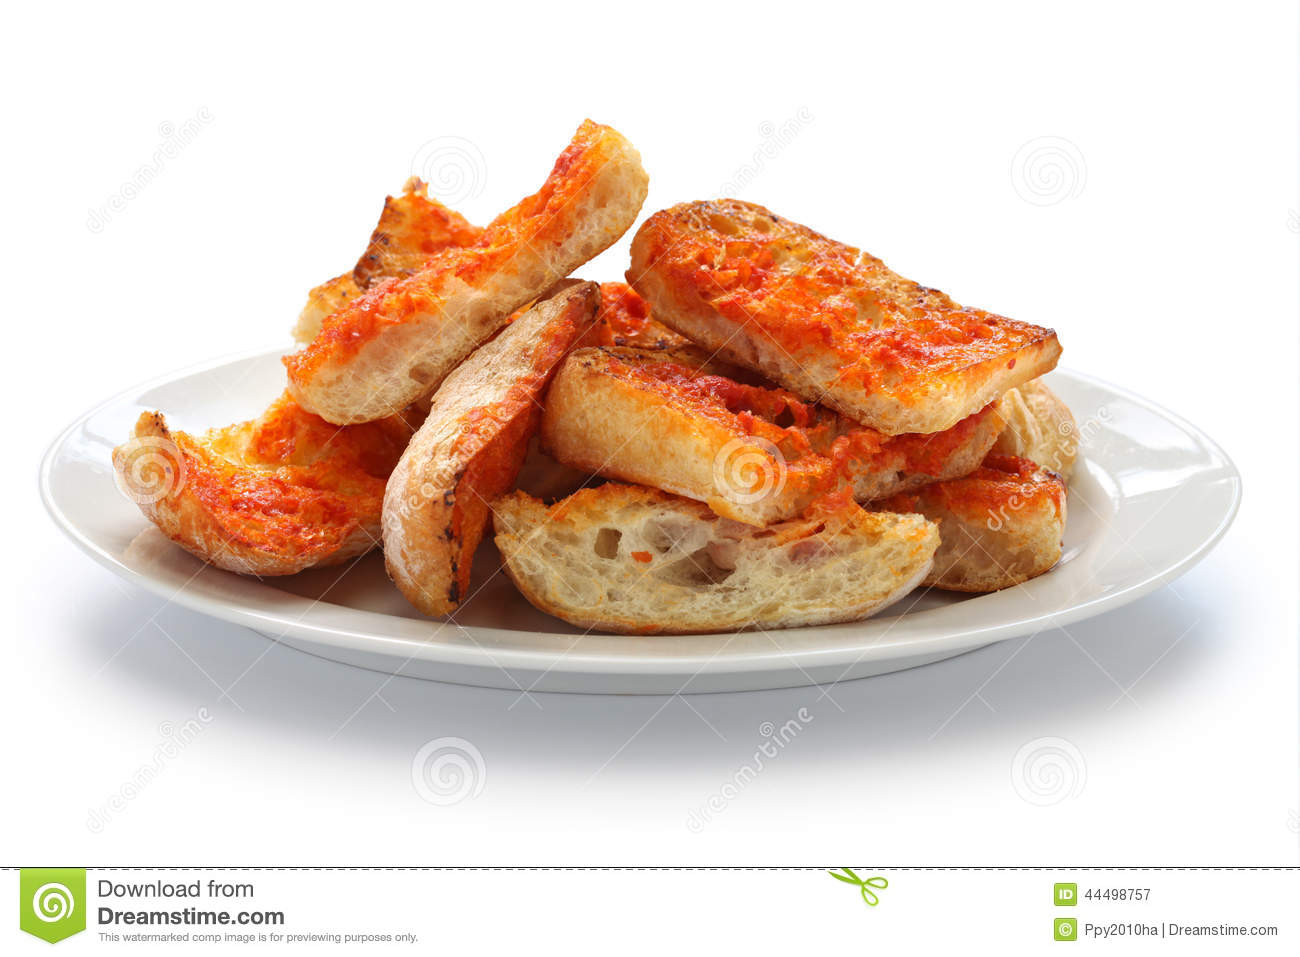 Pan Con Tomate, Spanish Tomato Bread Stock Photo - Image: 44498757